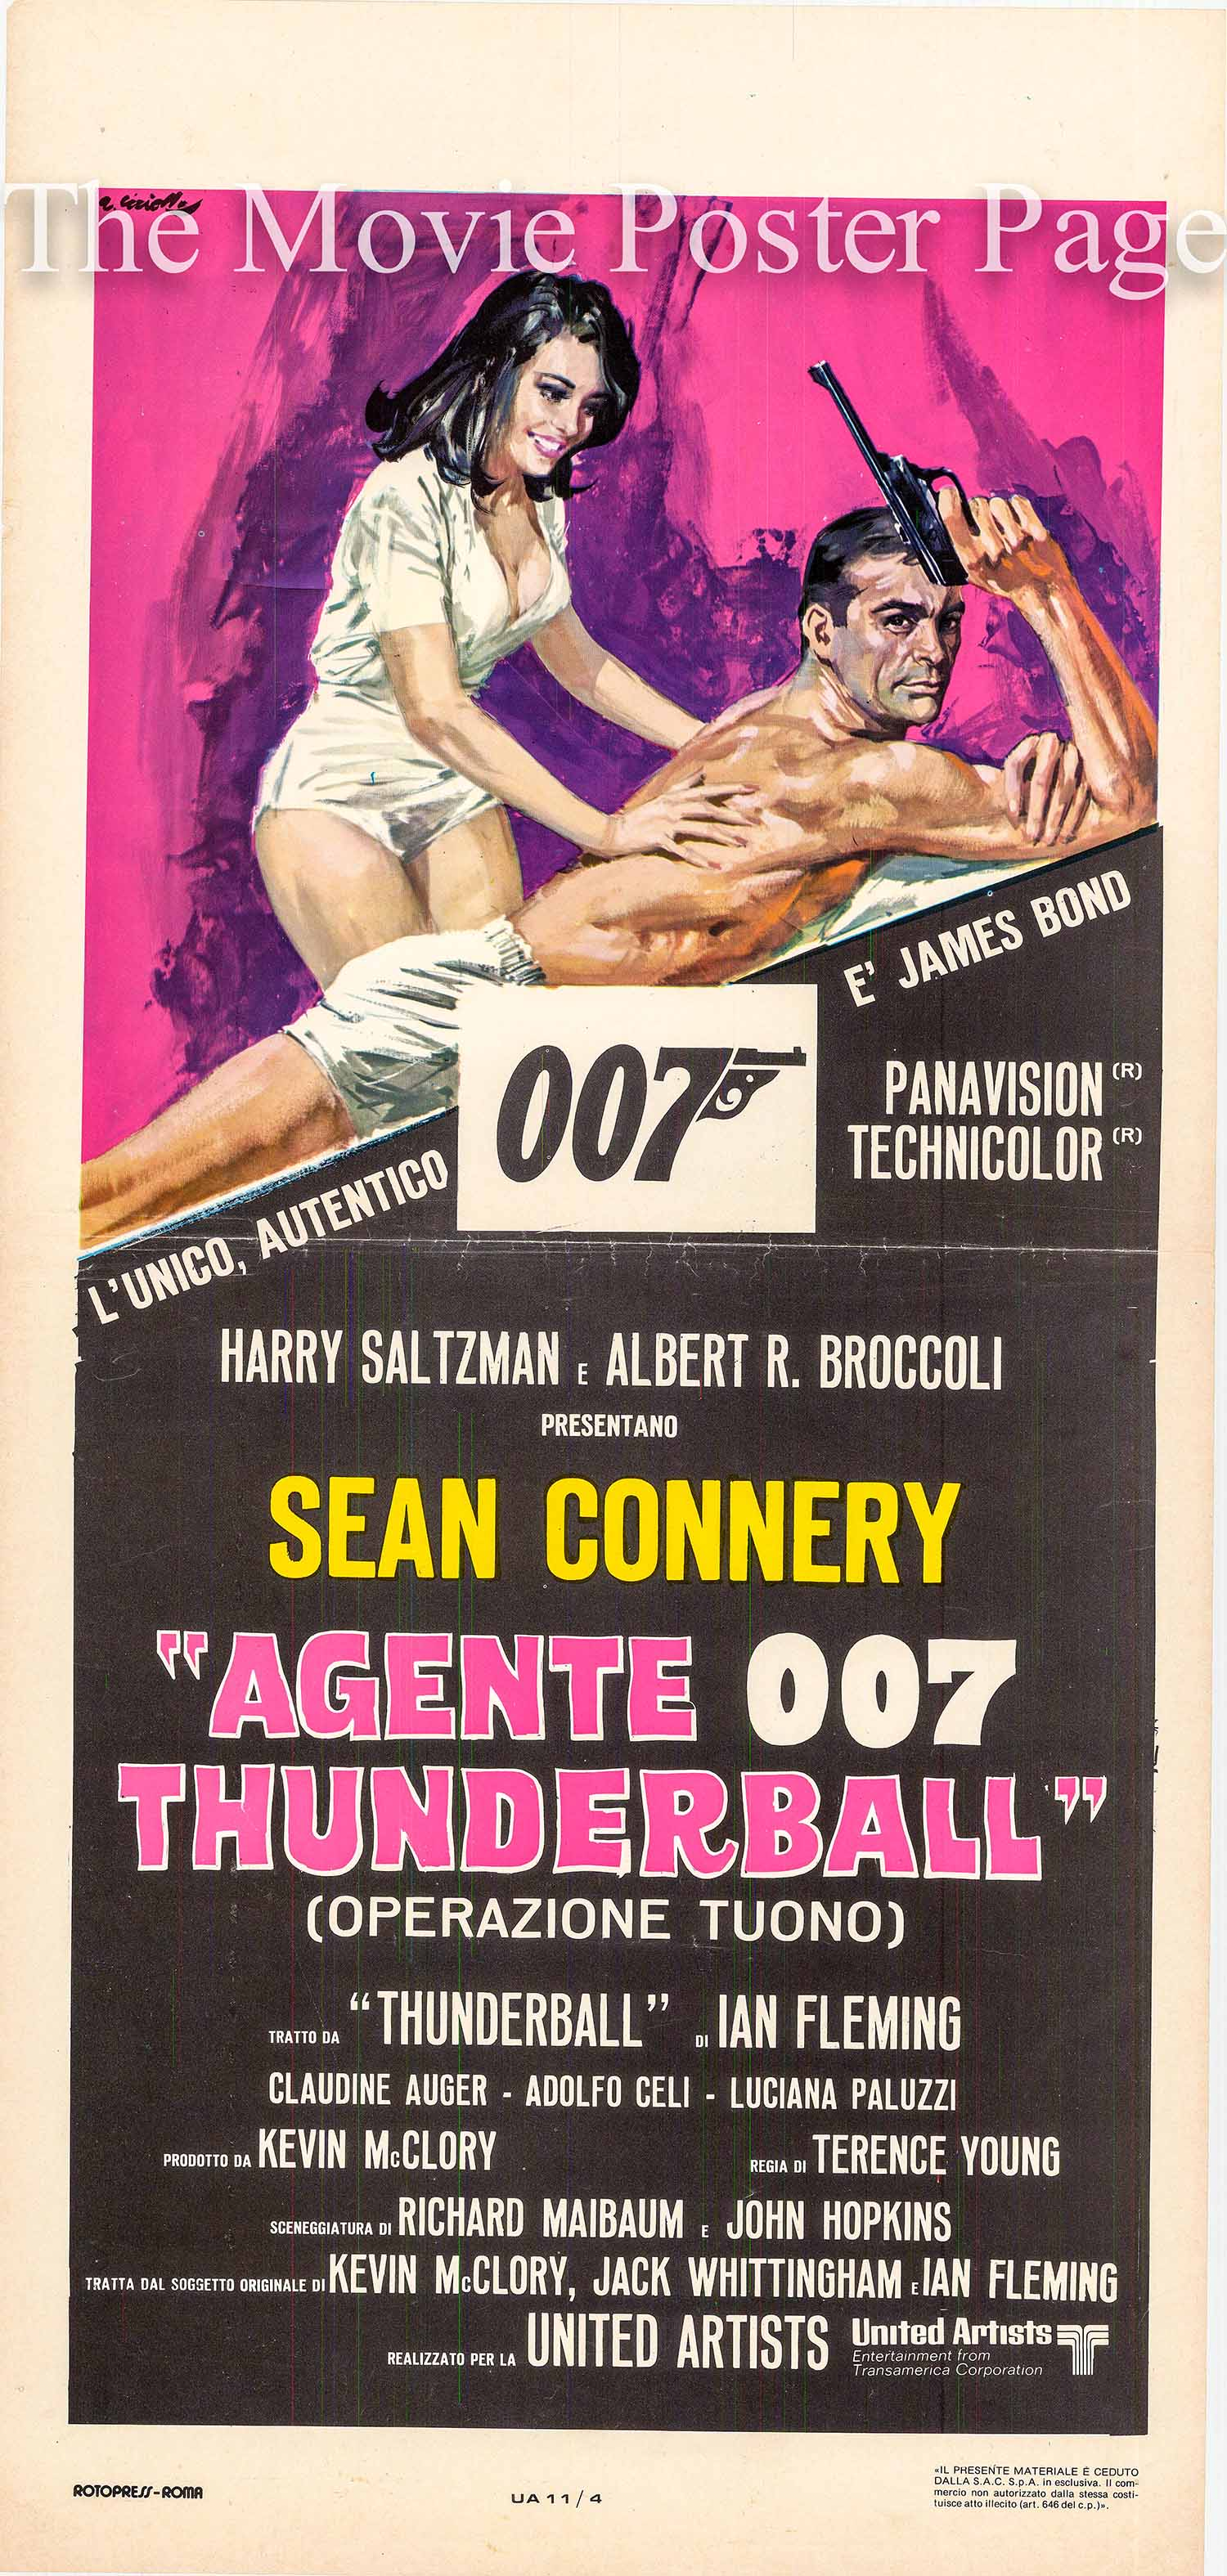 Pictured is the Italian locandina 1977 rerelease promotional movie poster for the 1965 Terence Young James Bond film Thunderball, starring Sean Connery.